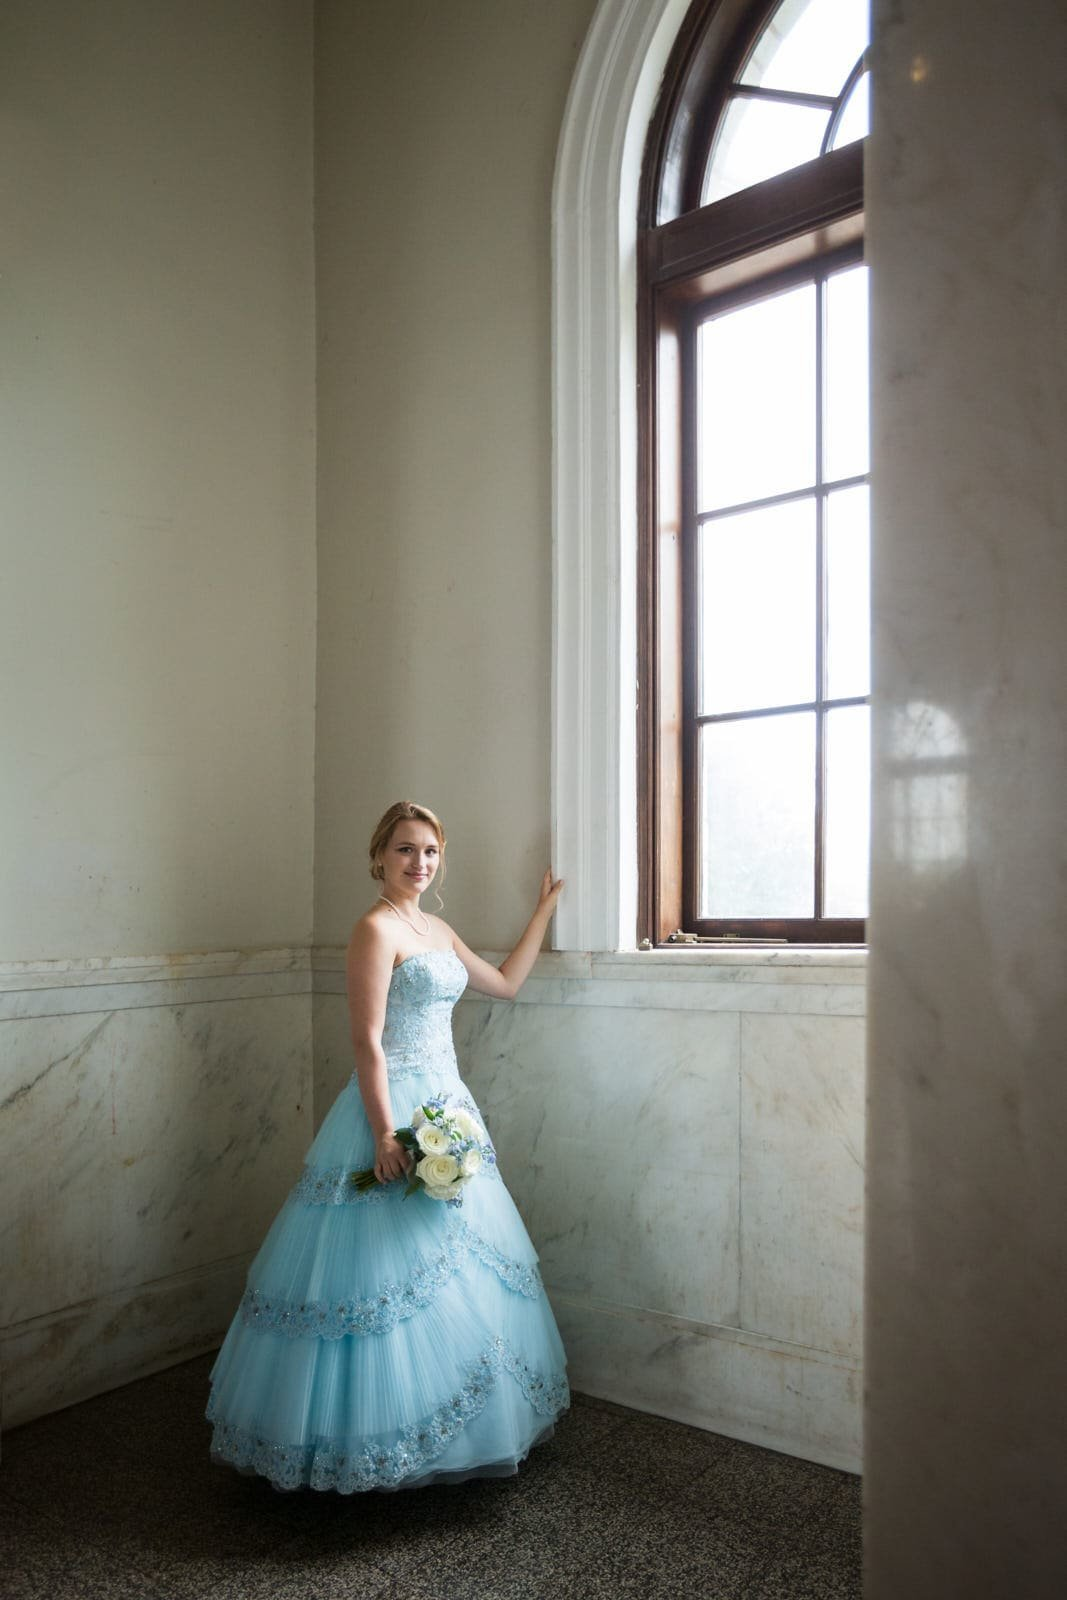 bridal portrait by window at Atlanta Historic Dekalb Courthouse wedding